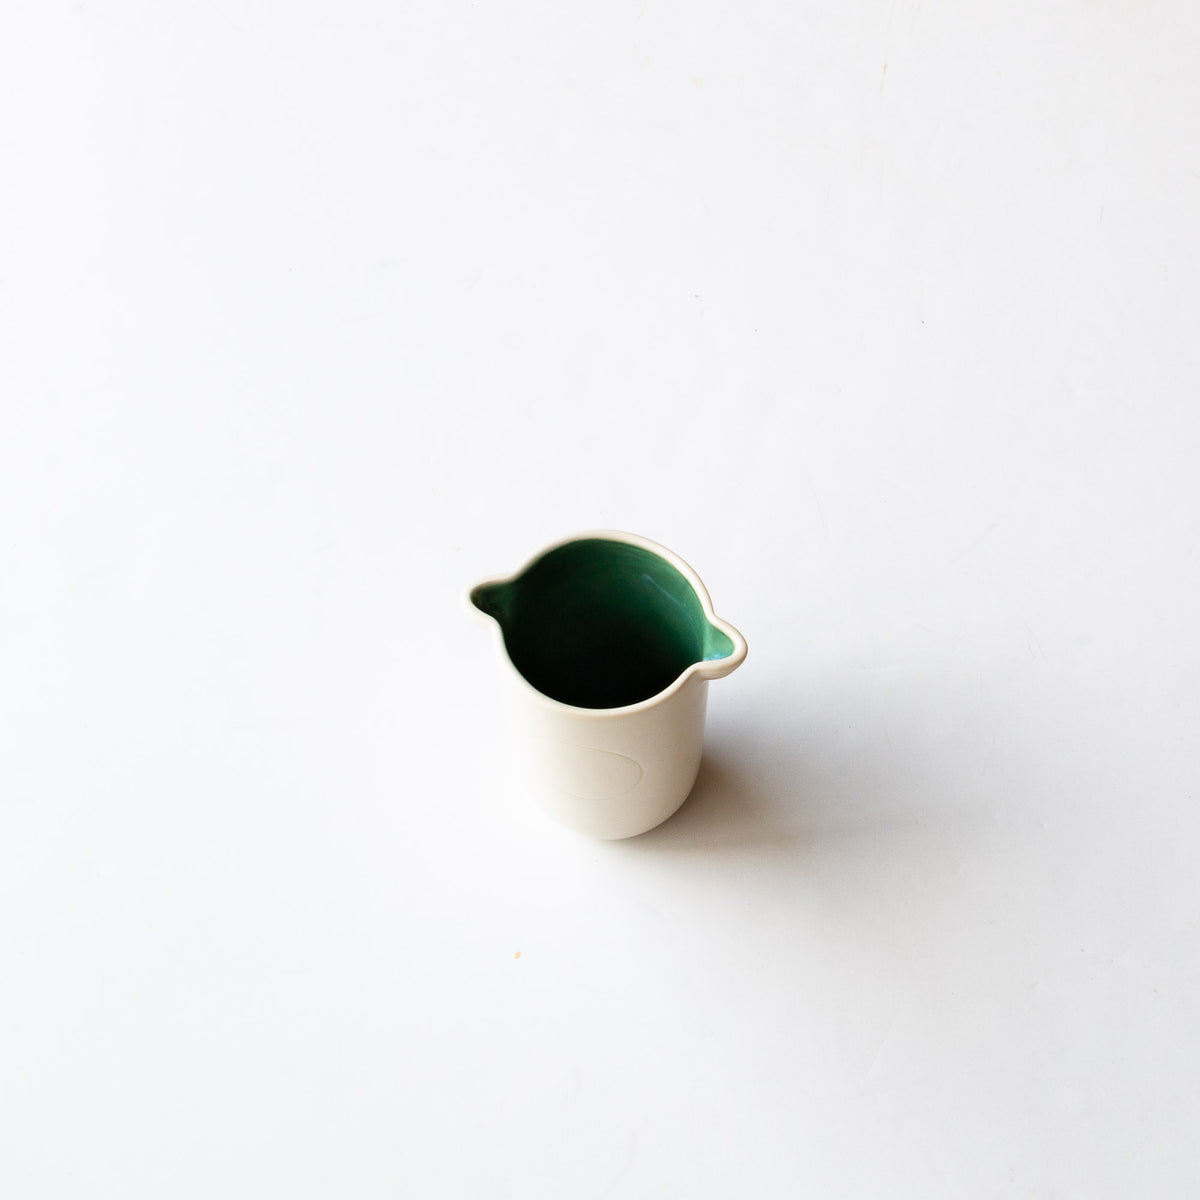 Top View - Handmade Tumbler / Small Porcelain Vase - Sold by Chic & Basta